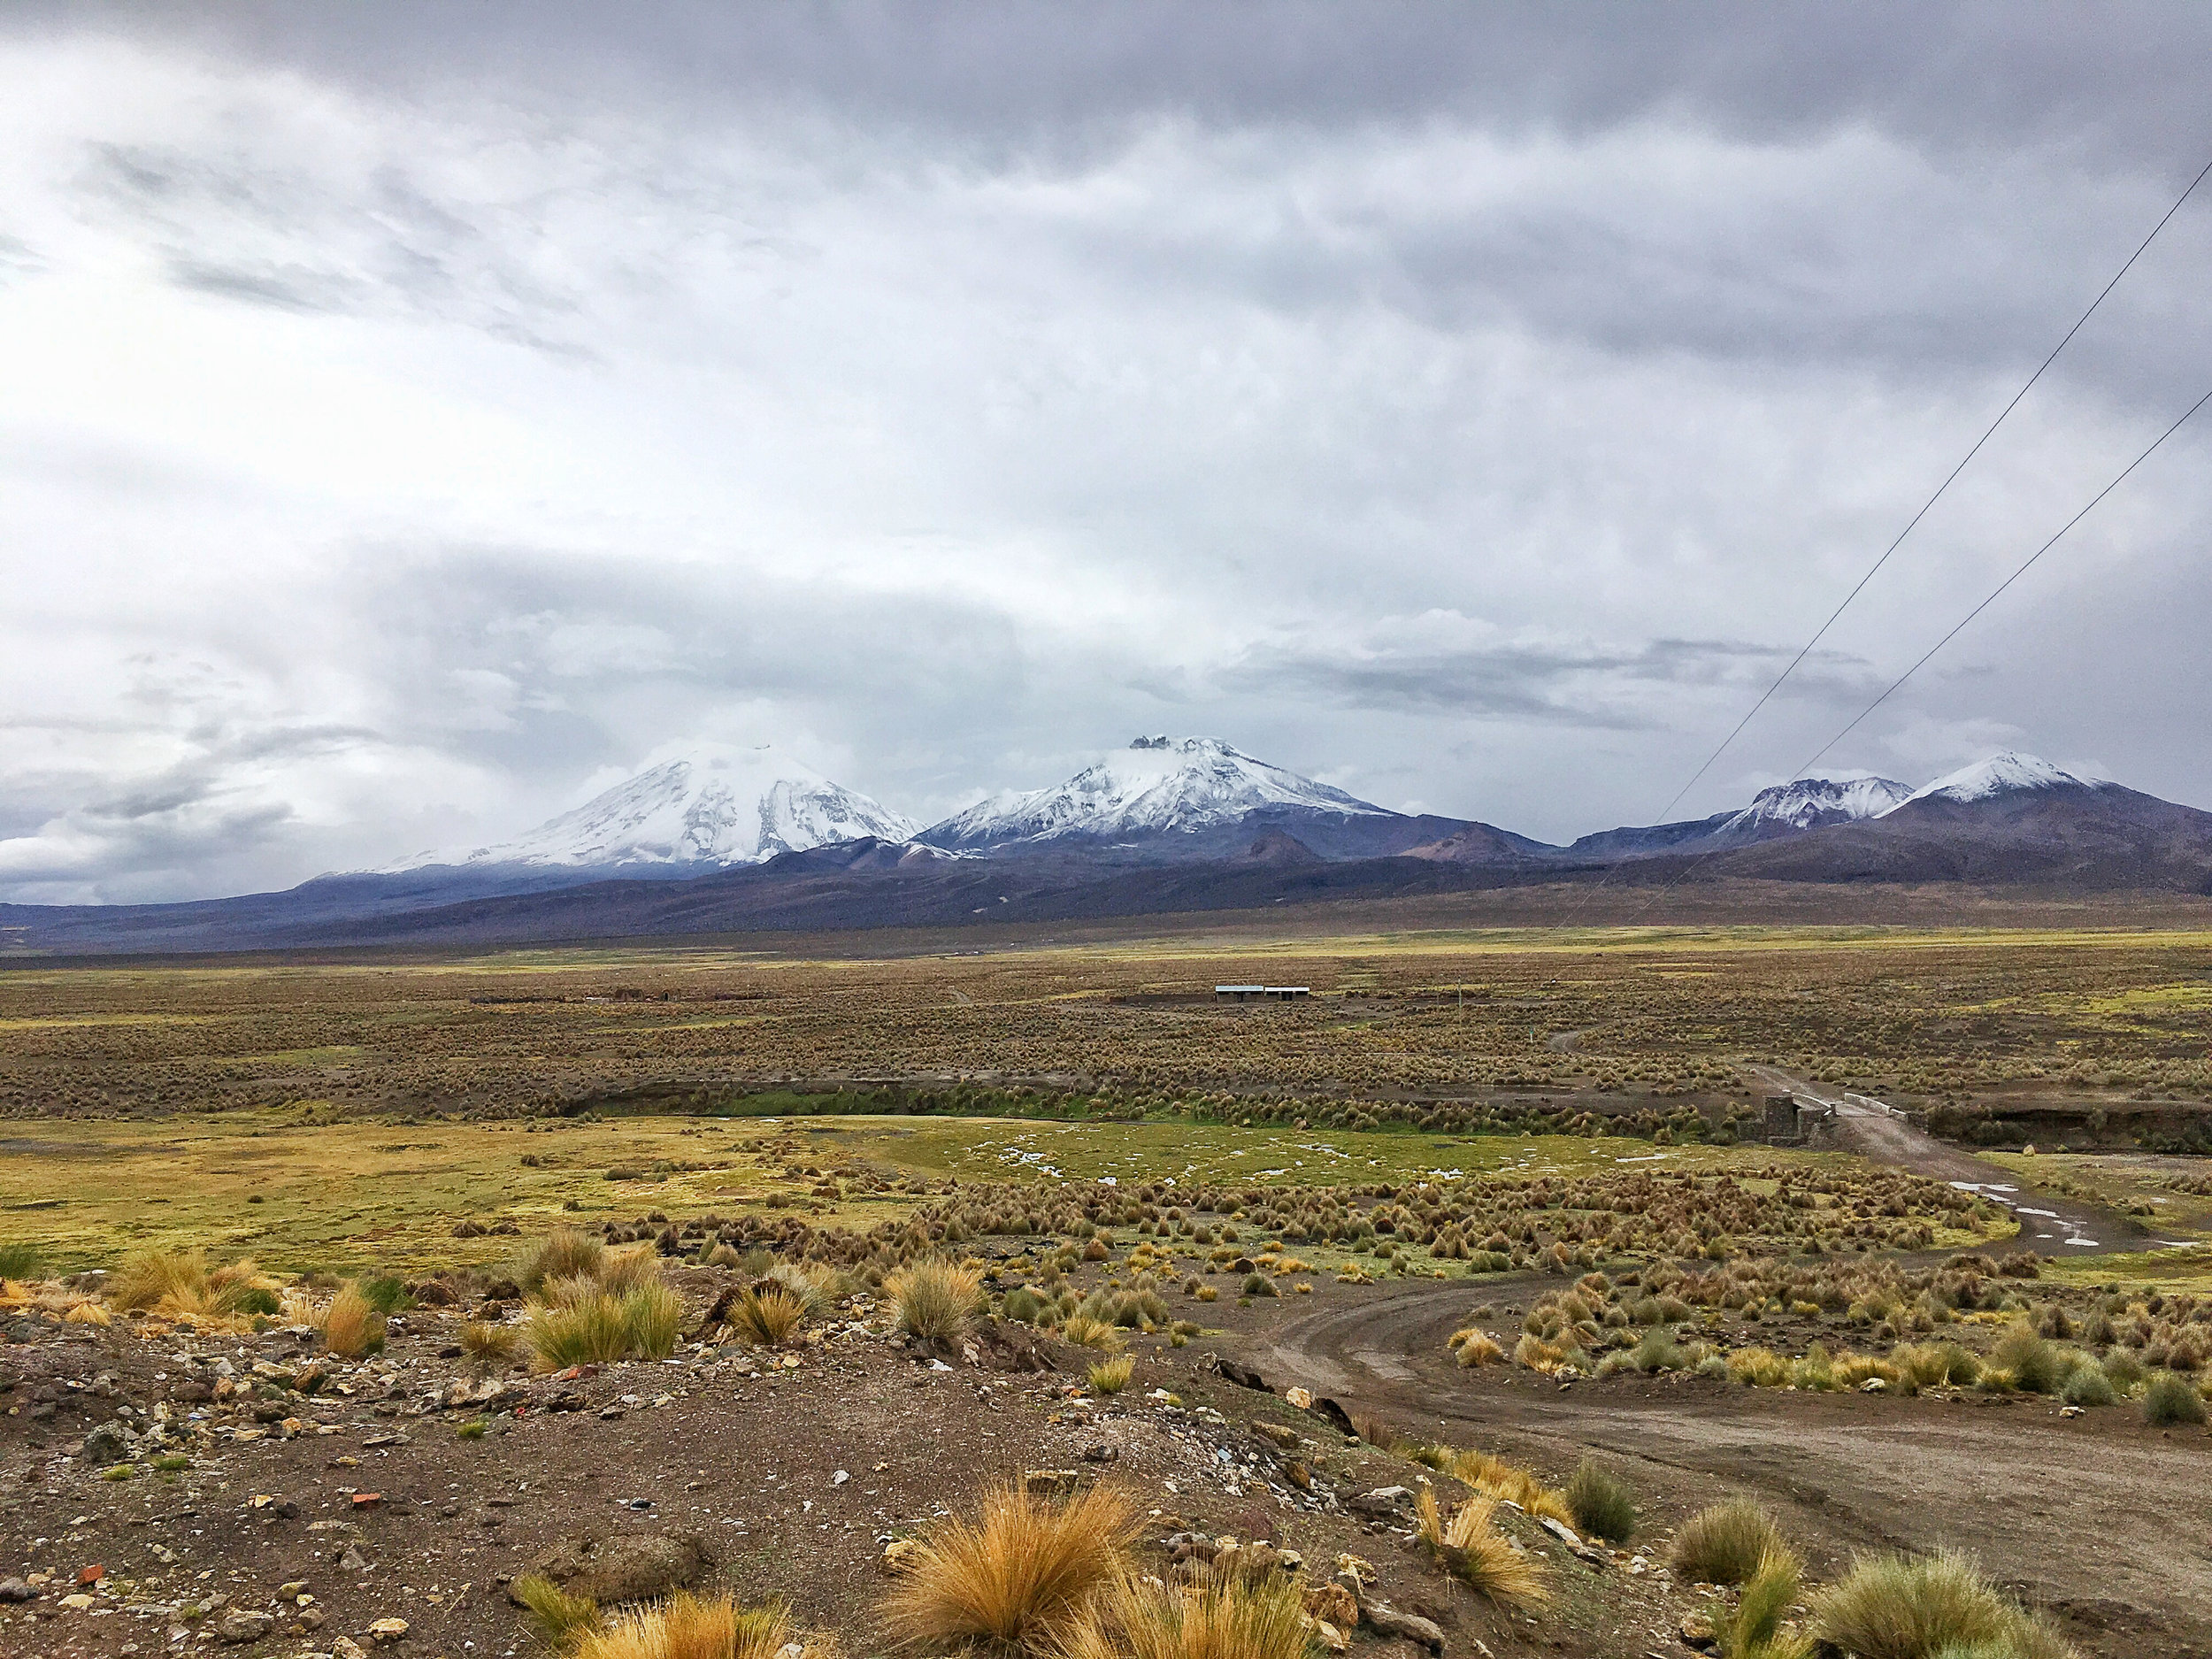 Looking out at a sampling of the volcanoes of Sajama National Park